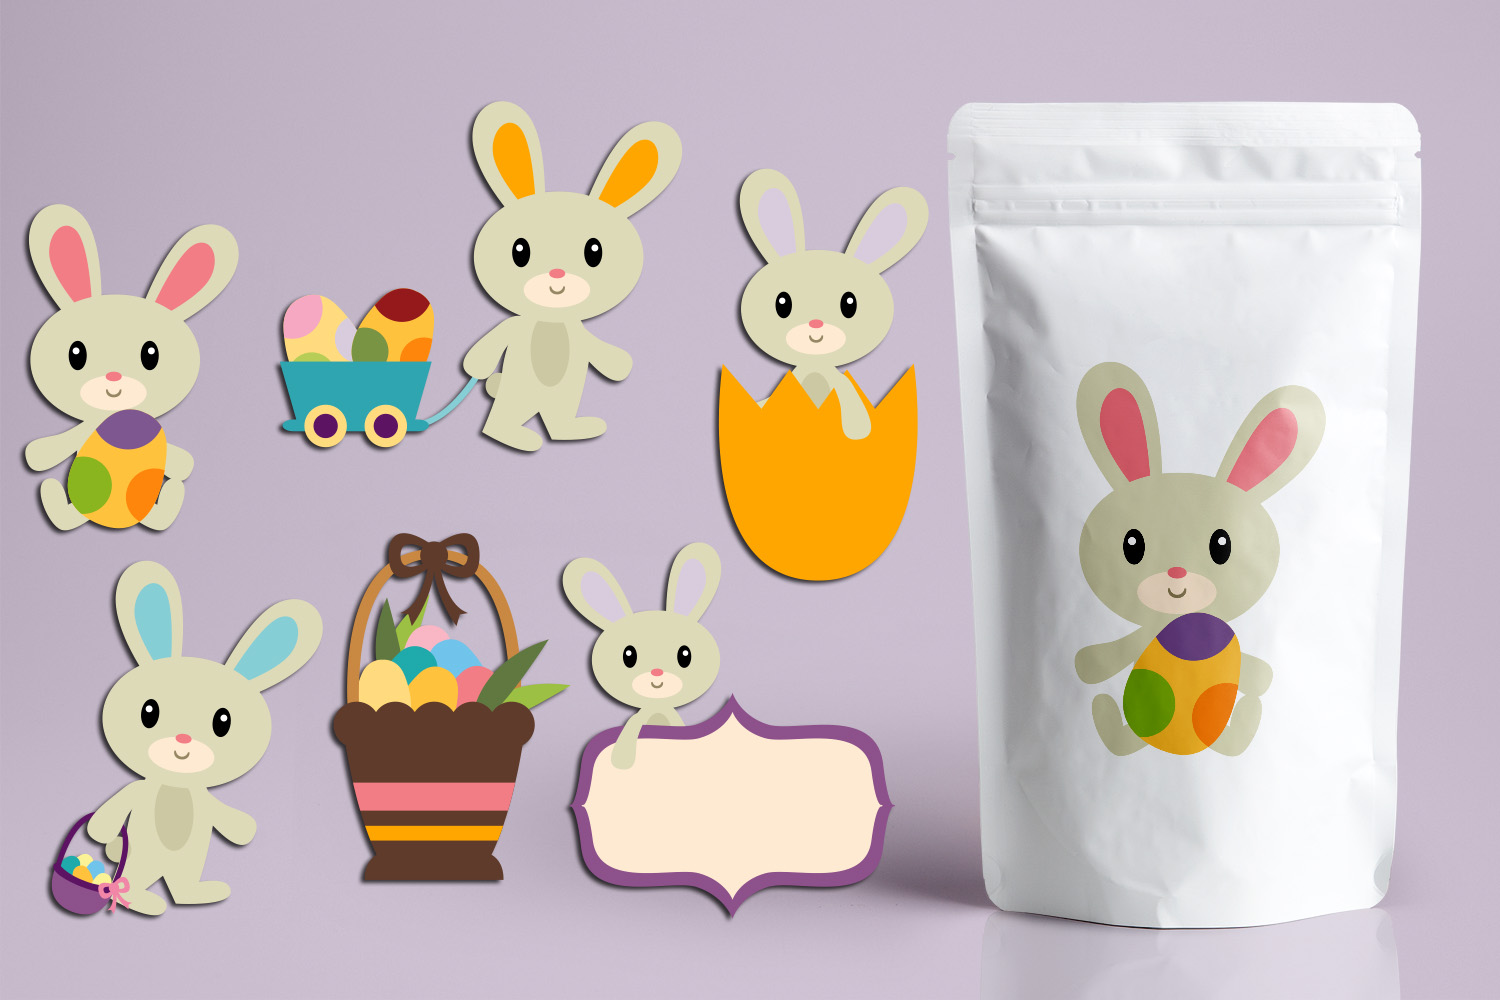 Download Free Easter Bunny Graphic By Revidevi Creative Fabrica for Cricut Explore, Silhouette and other cutting machines.